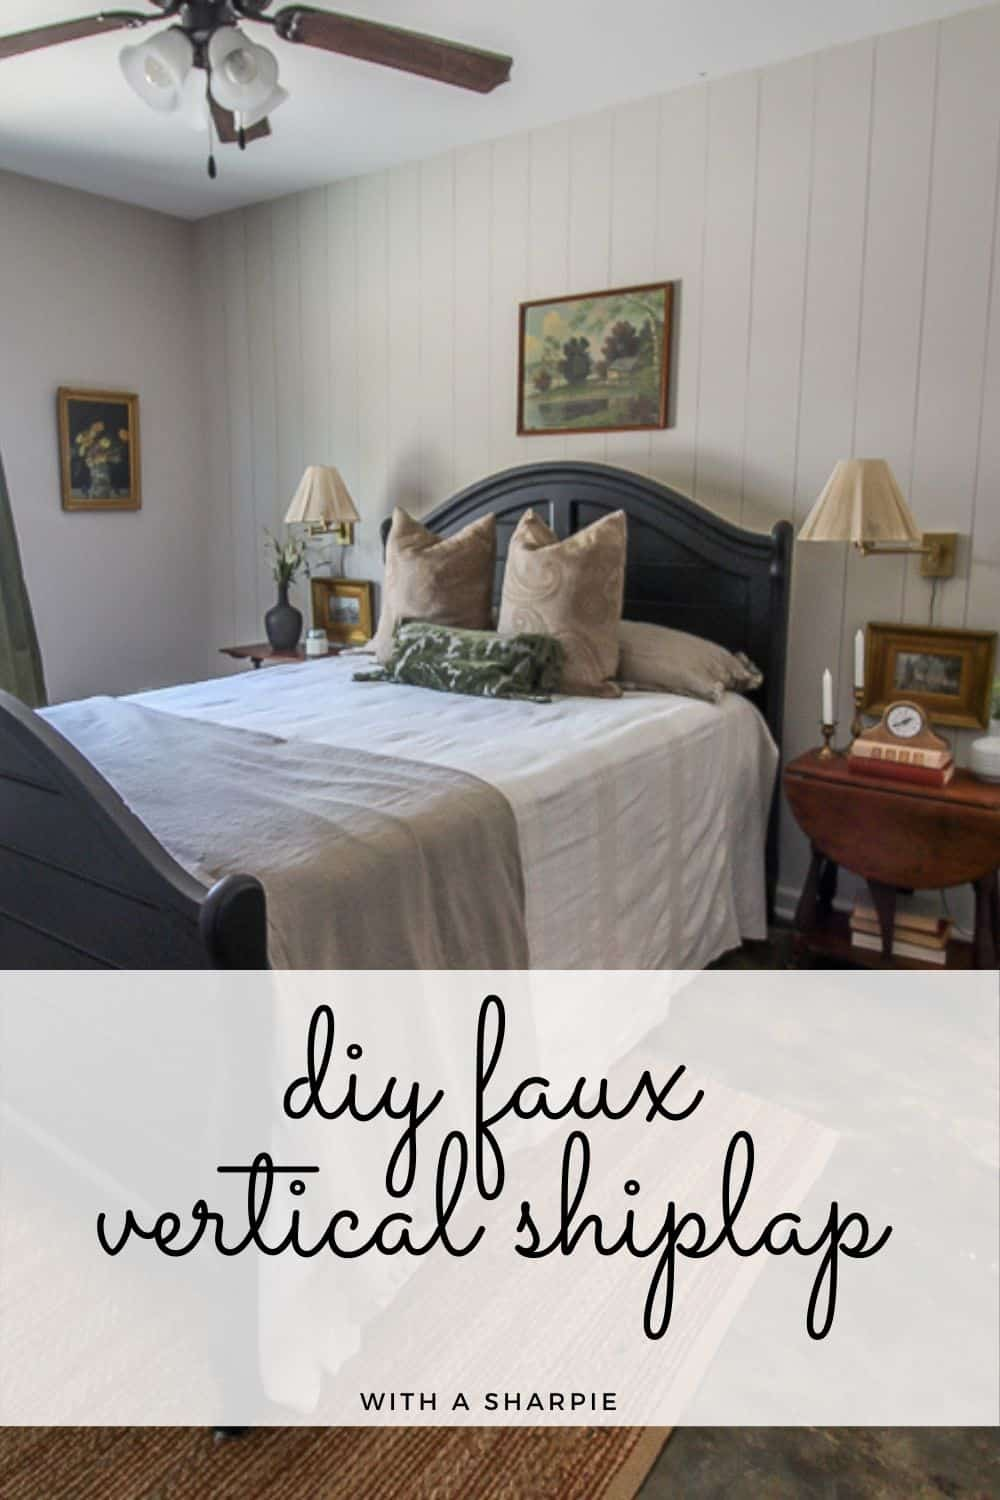 diy faux vertical shiplap with a Sharpie